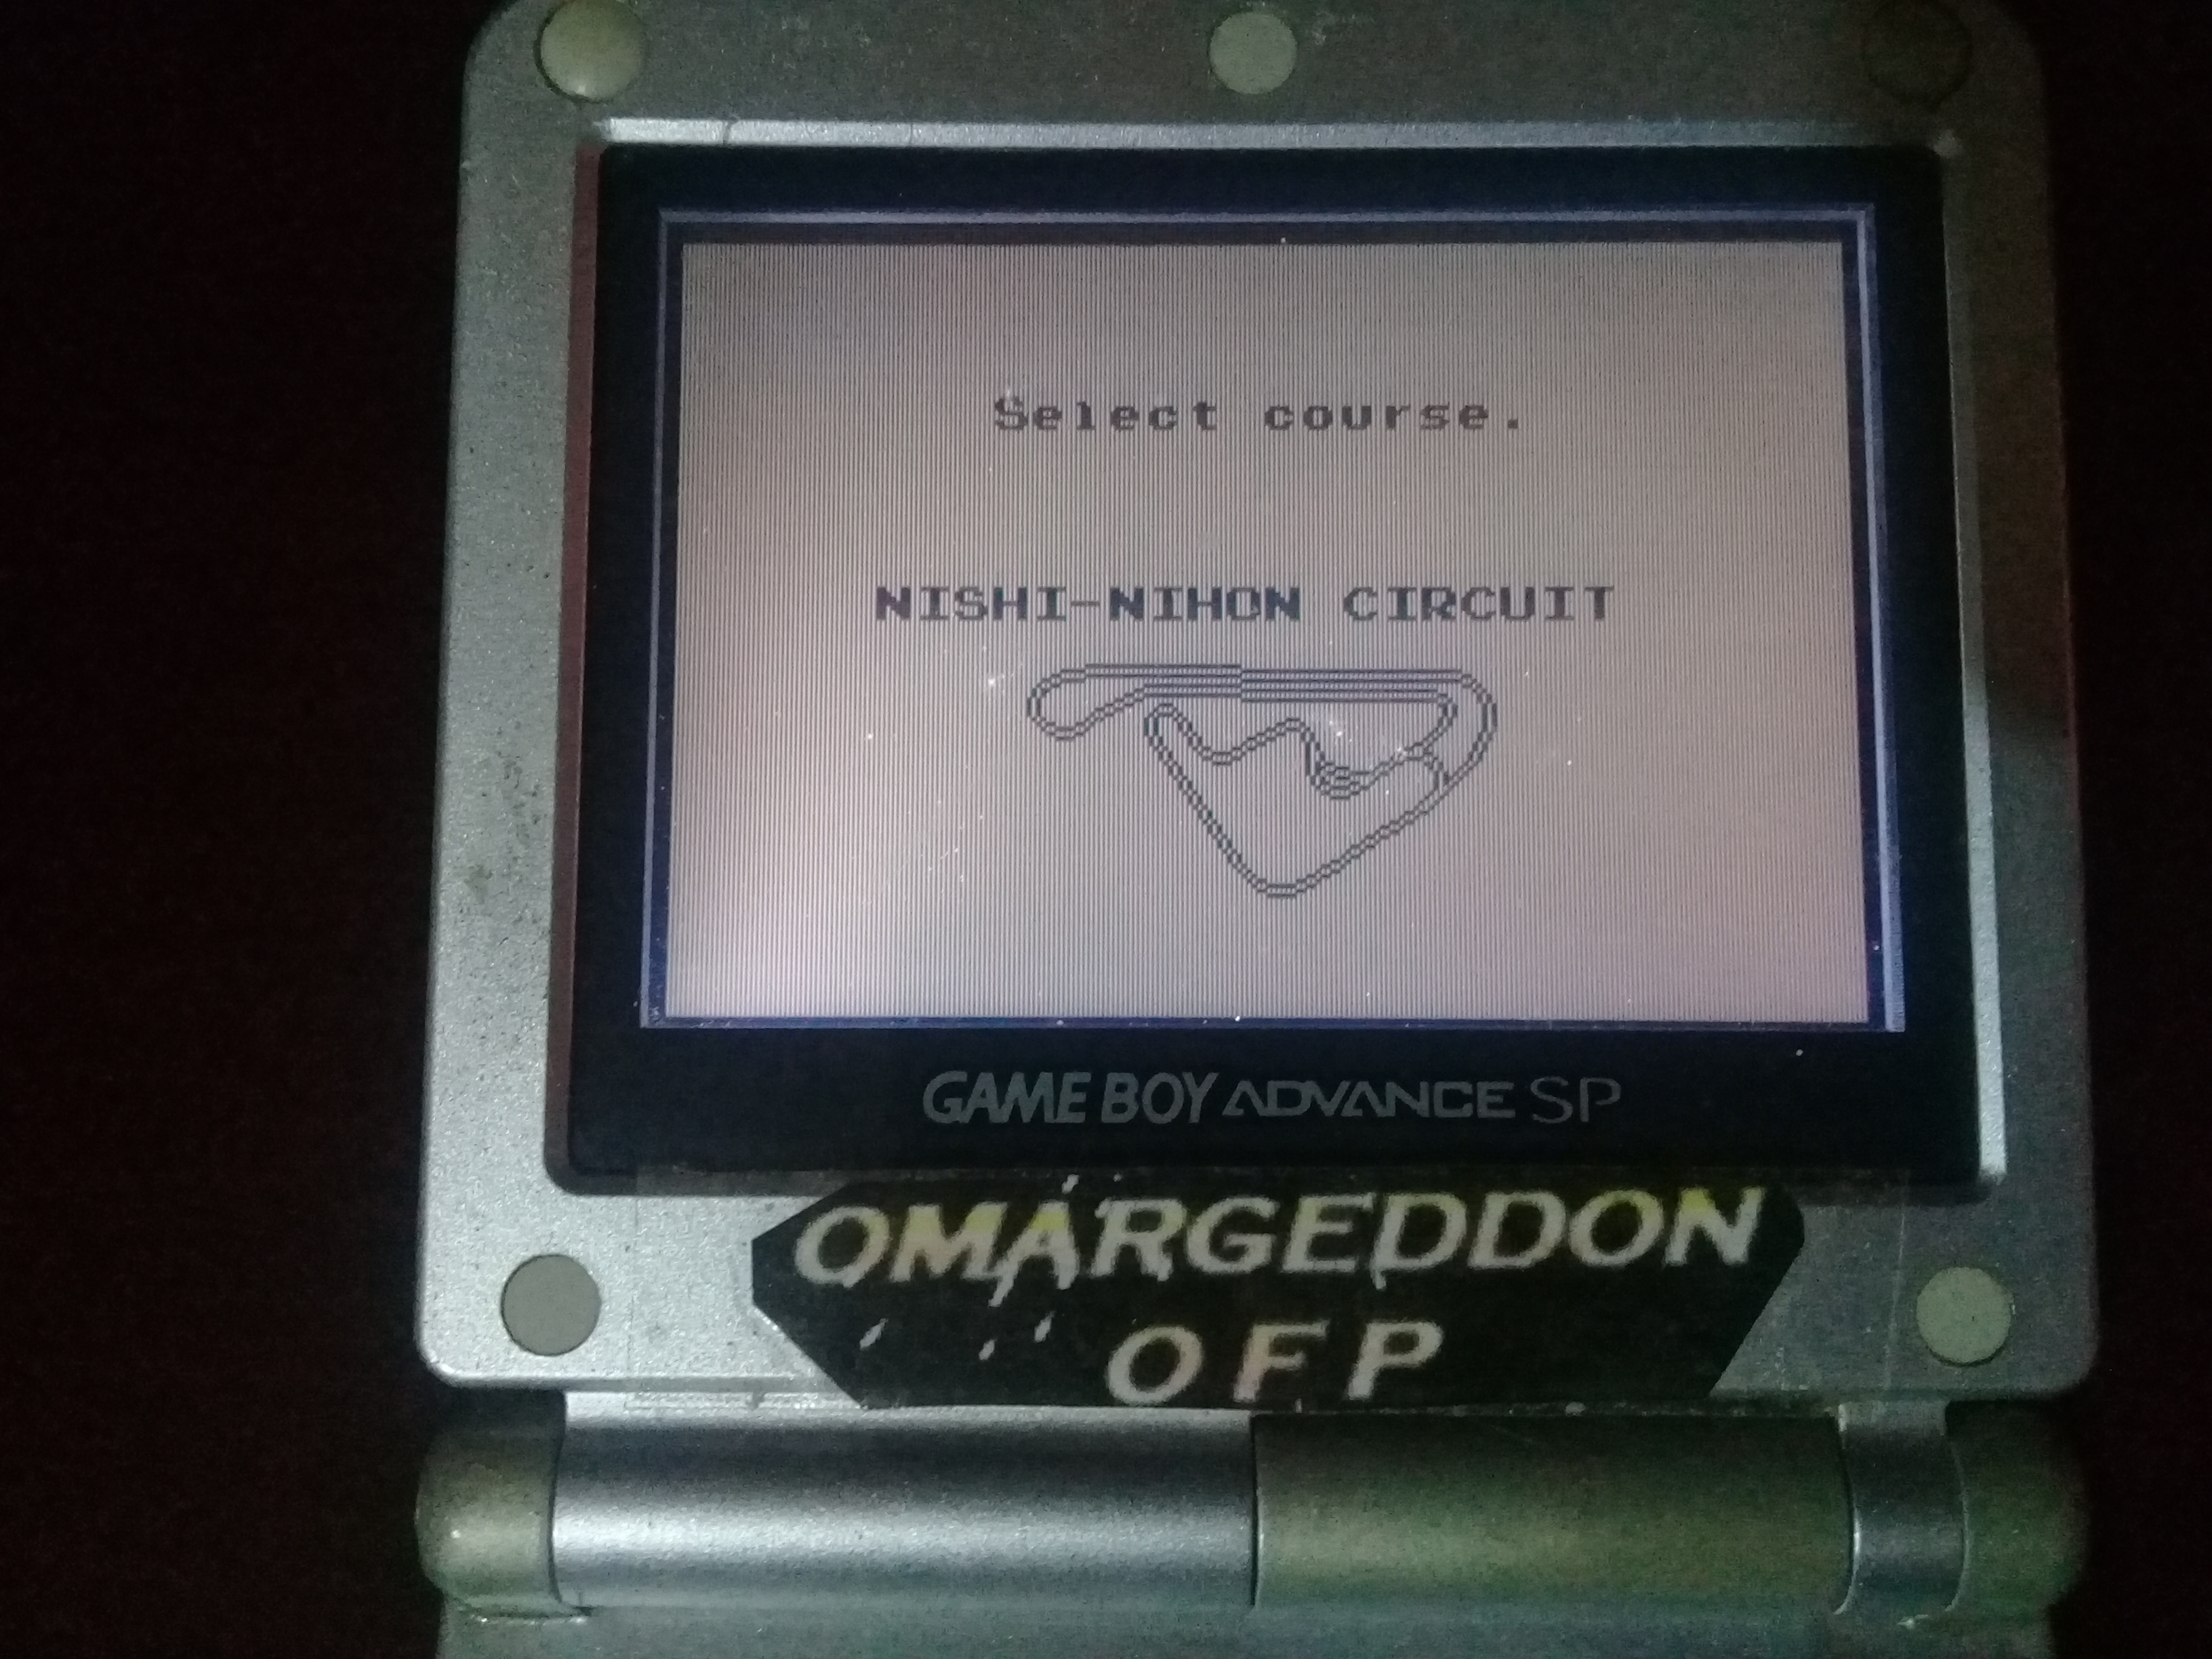 omargeddon: Racing Tamashii: Nishi-Nihon Circuit [Practice] (Game Boy) 0:03:28.5 points on 2020-06-07 17:08:02